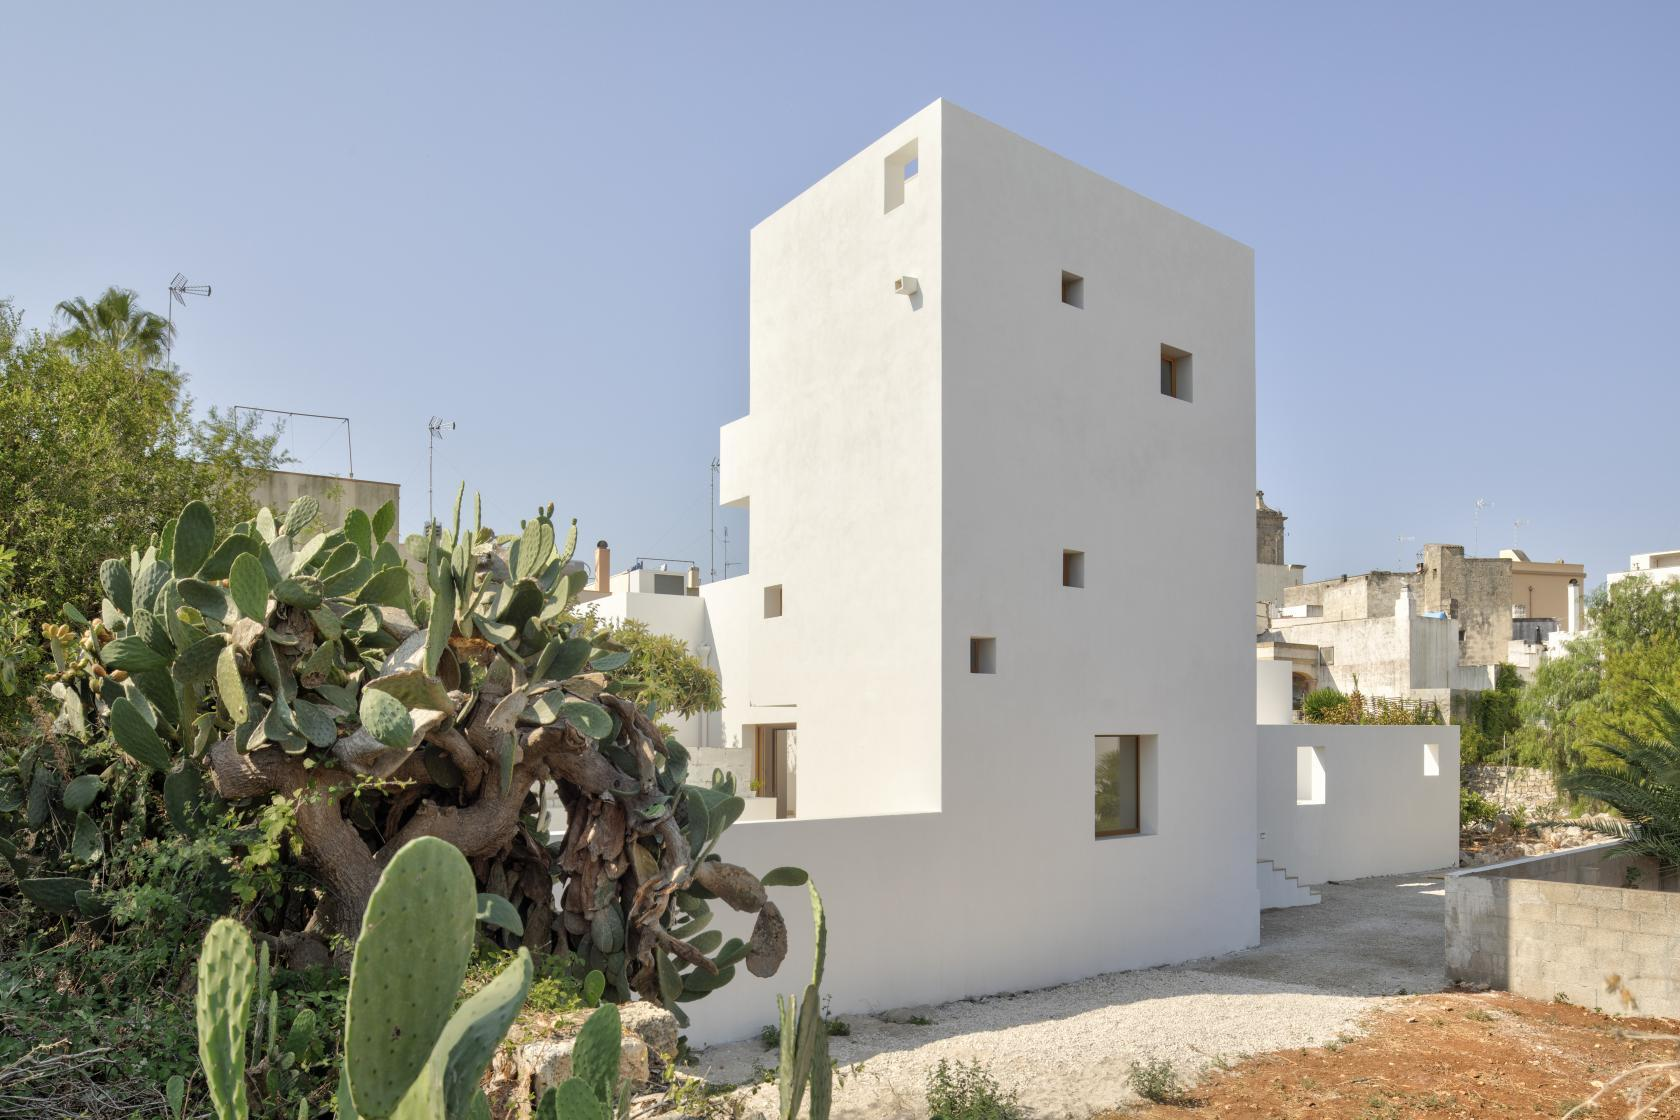 In Southern Italy, Lorenzo Grifantini Has Designed His Own Home As A Cubist White Tower - IGNANT